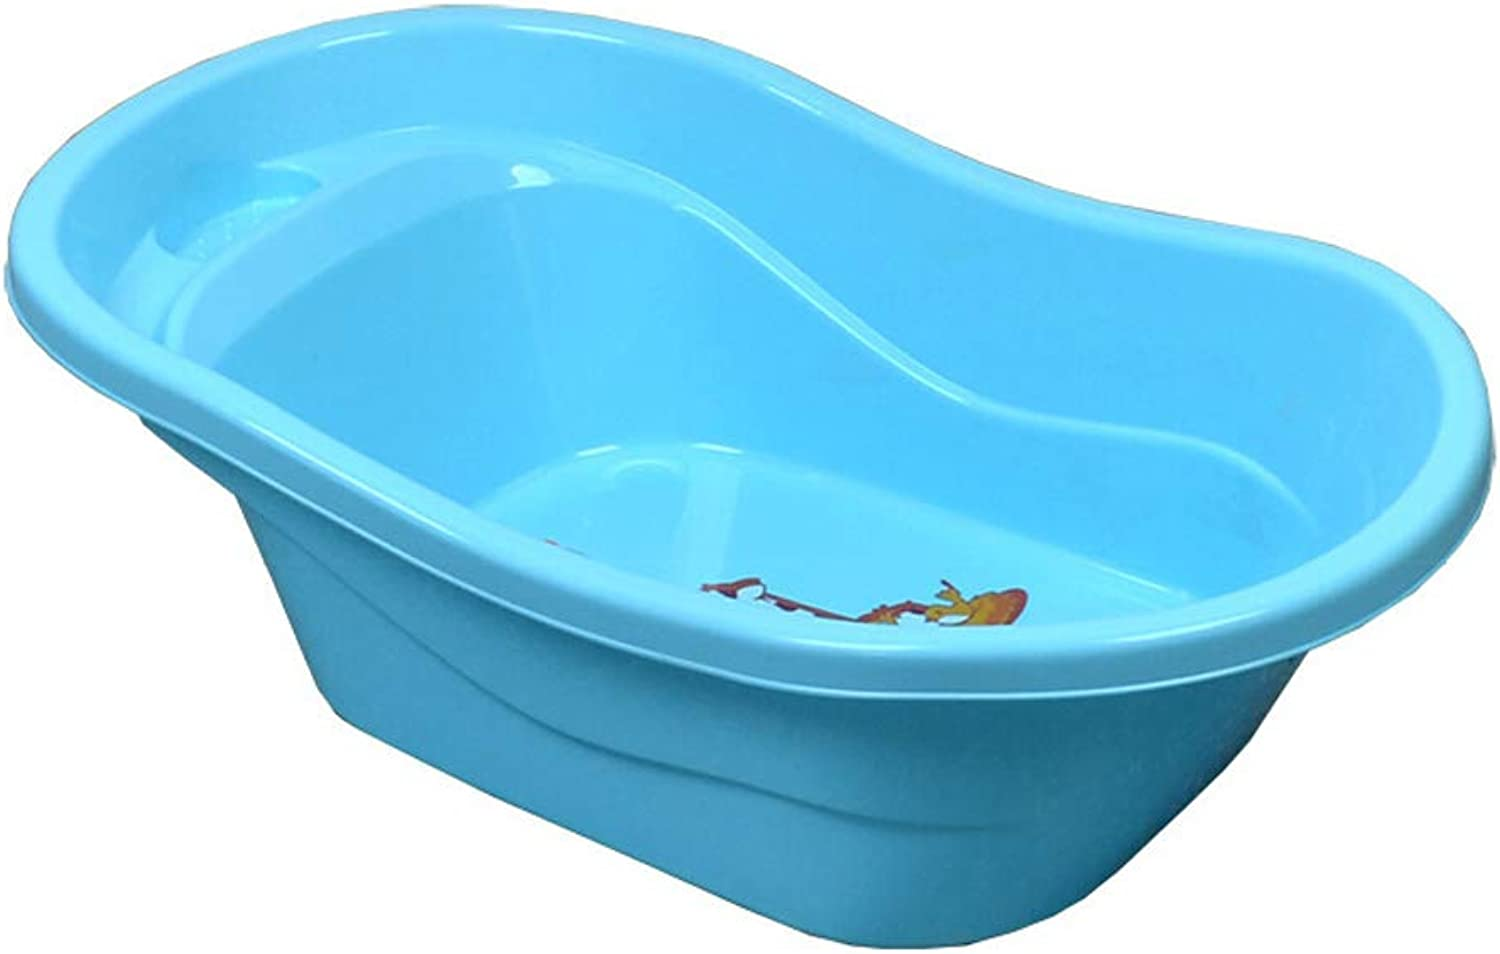 Dog Cat Swimming Pool Bathing Supplies Pet Bath Tub Tub Home Medium Dog Bath Tub bluee (color   bluee)